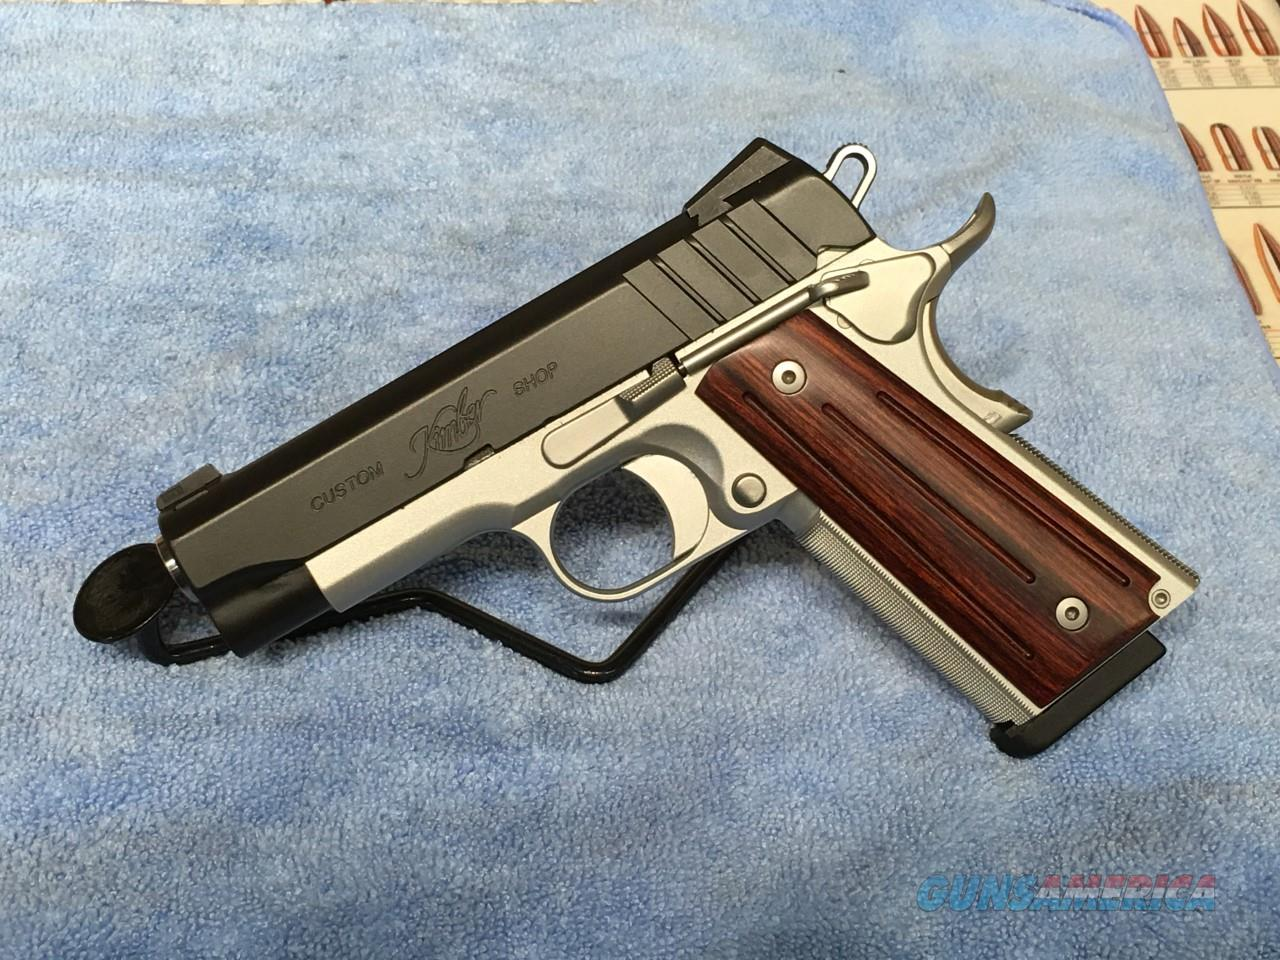 KIMBER PRO AEGIS 2 9MM  Guns > Pistols > 1911 Pistol Copies (non-Colt)